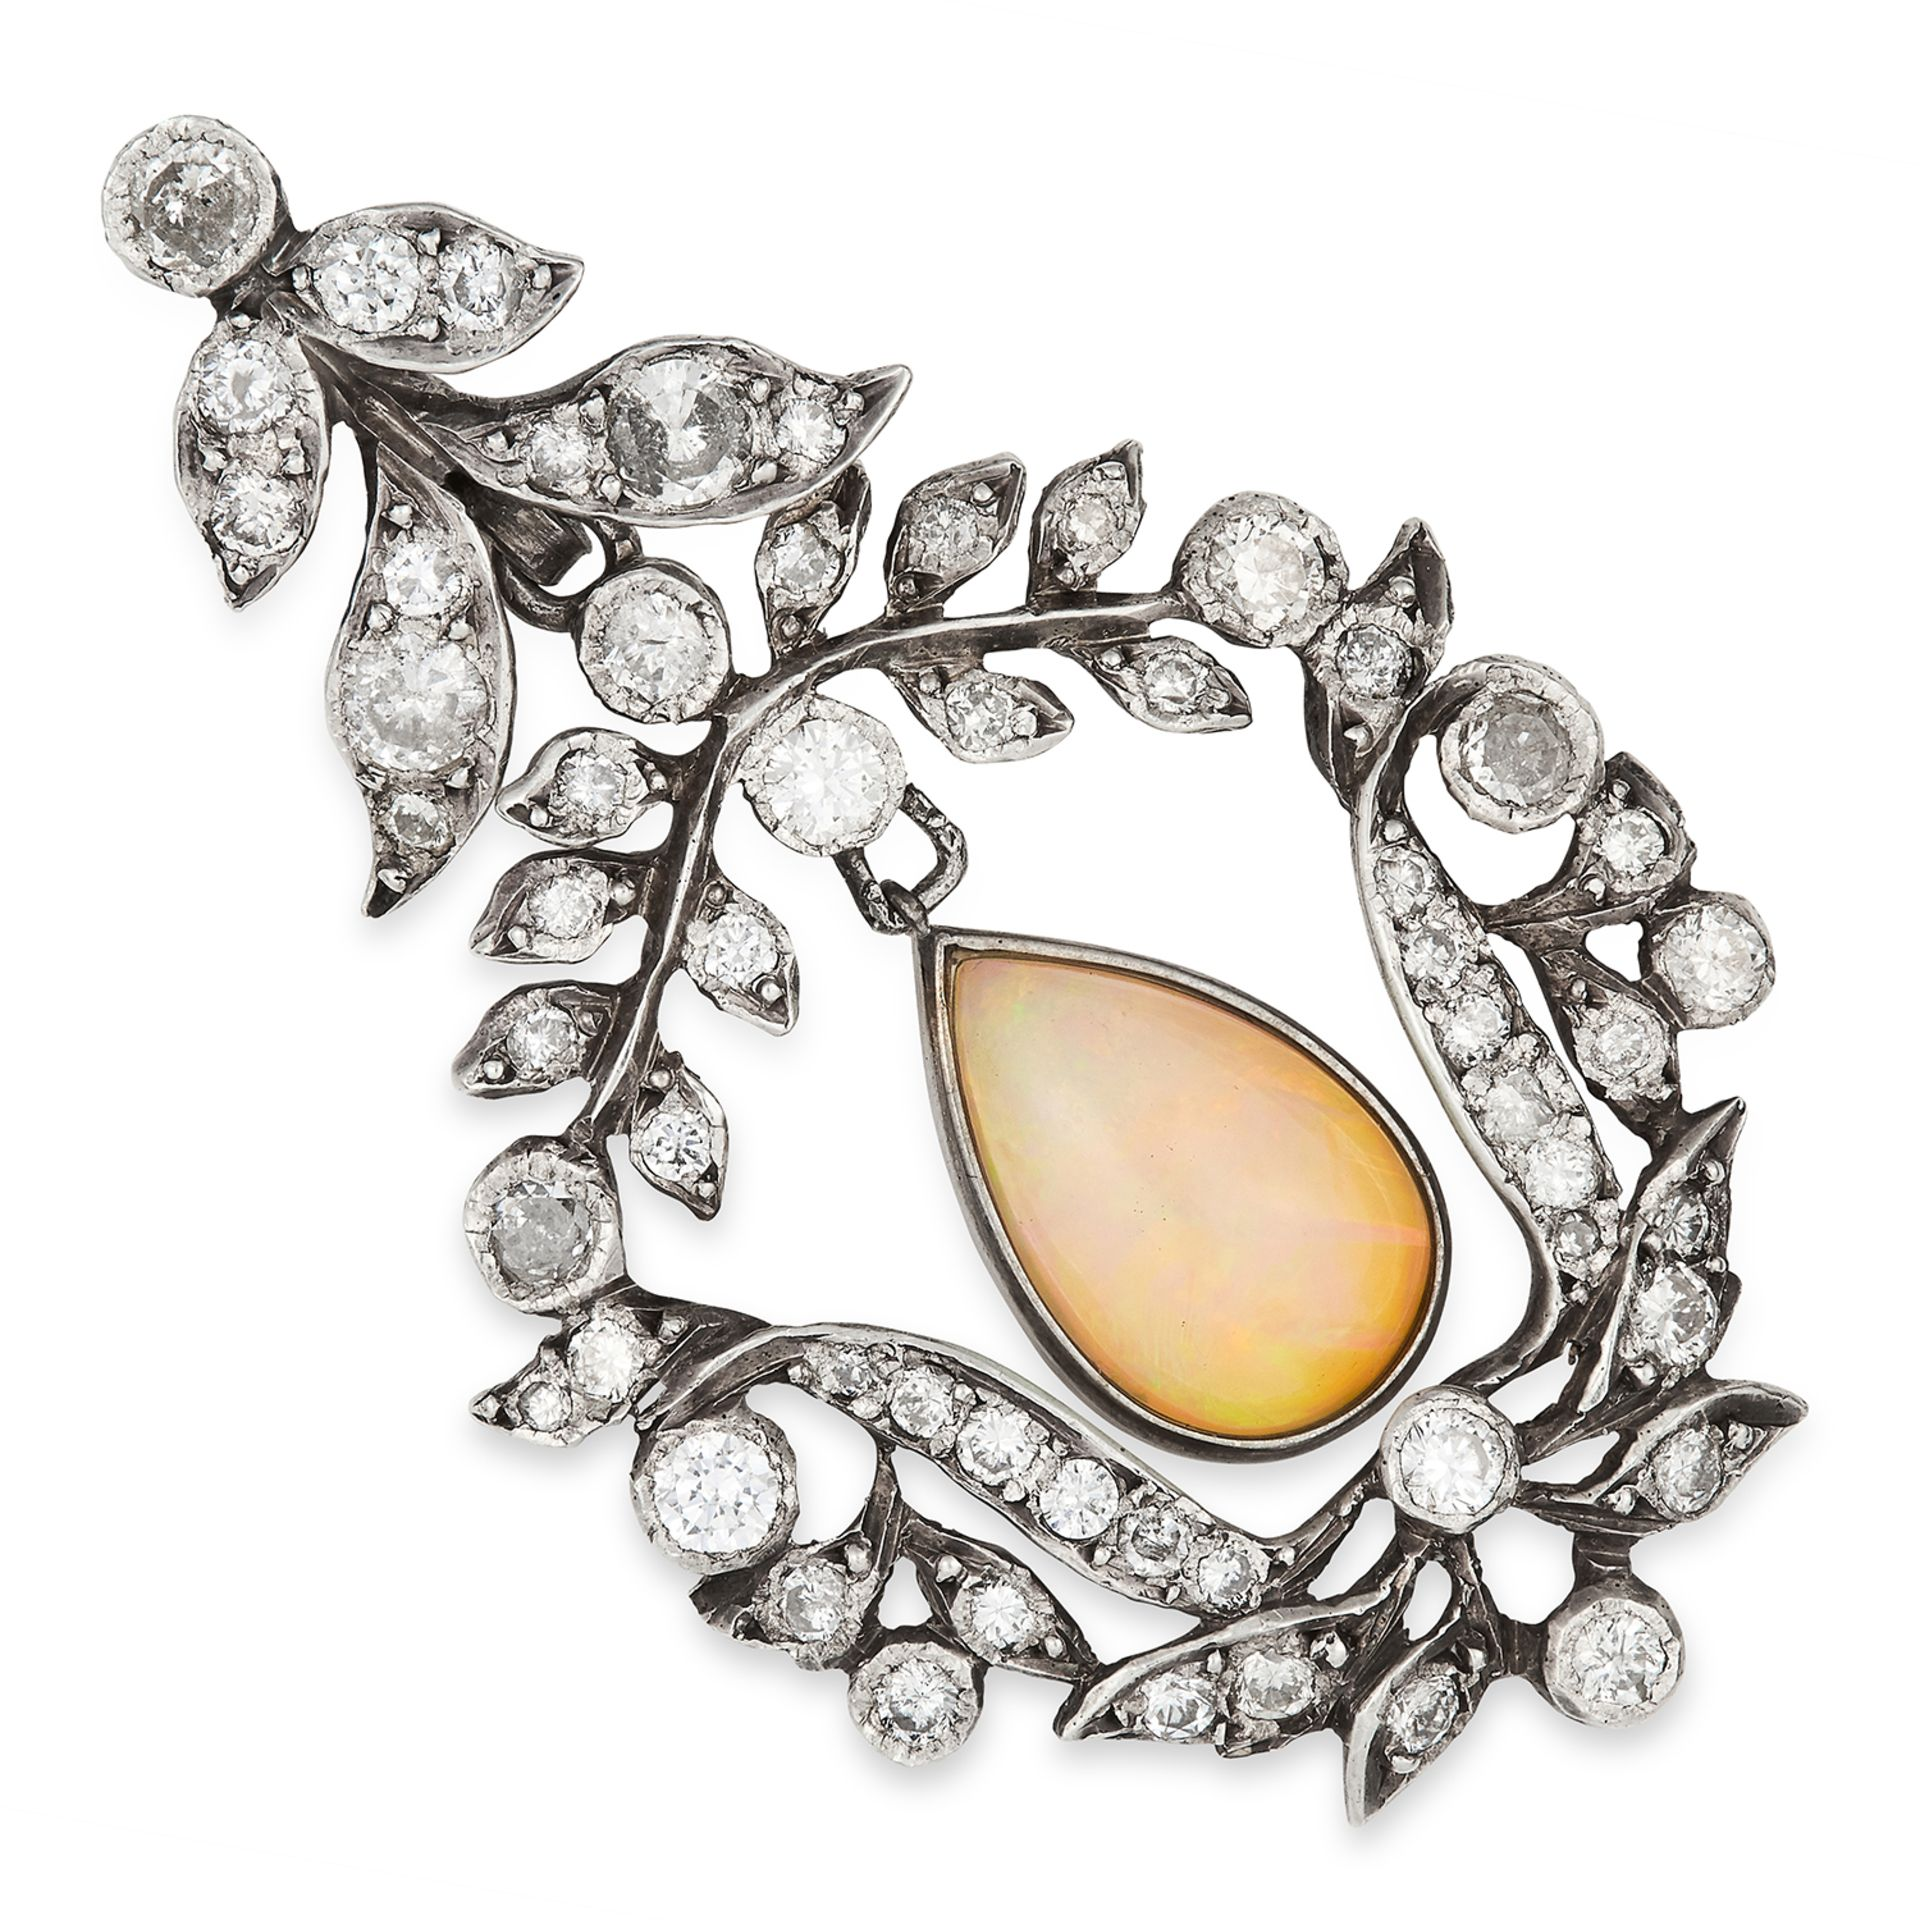 ANTIQUE OPAL AND DIAMOND PENDANT set with a pear cut opal in a foliate border set with round cut